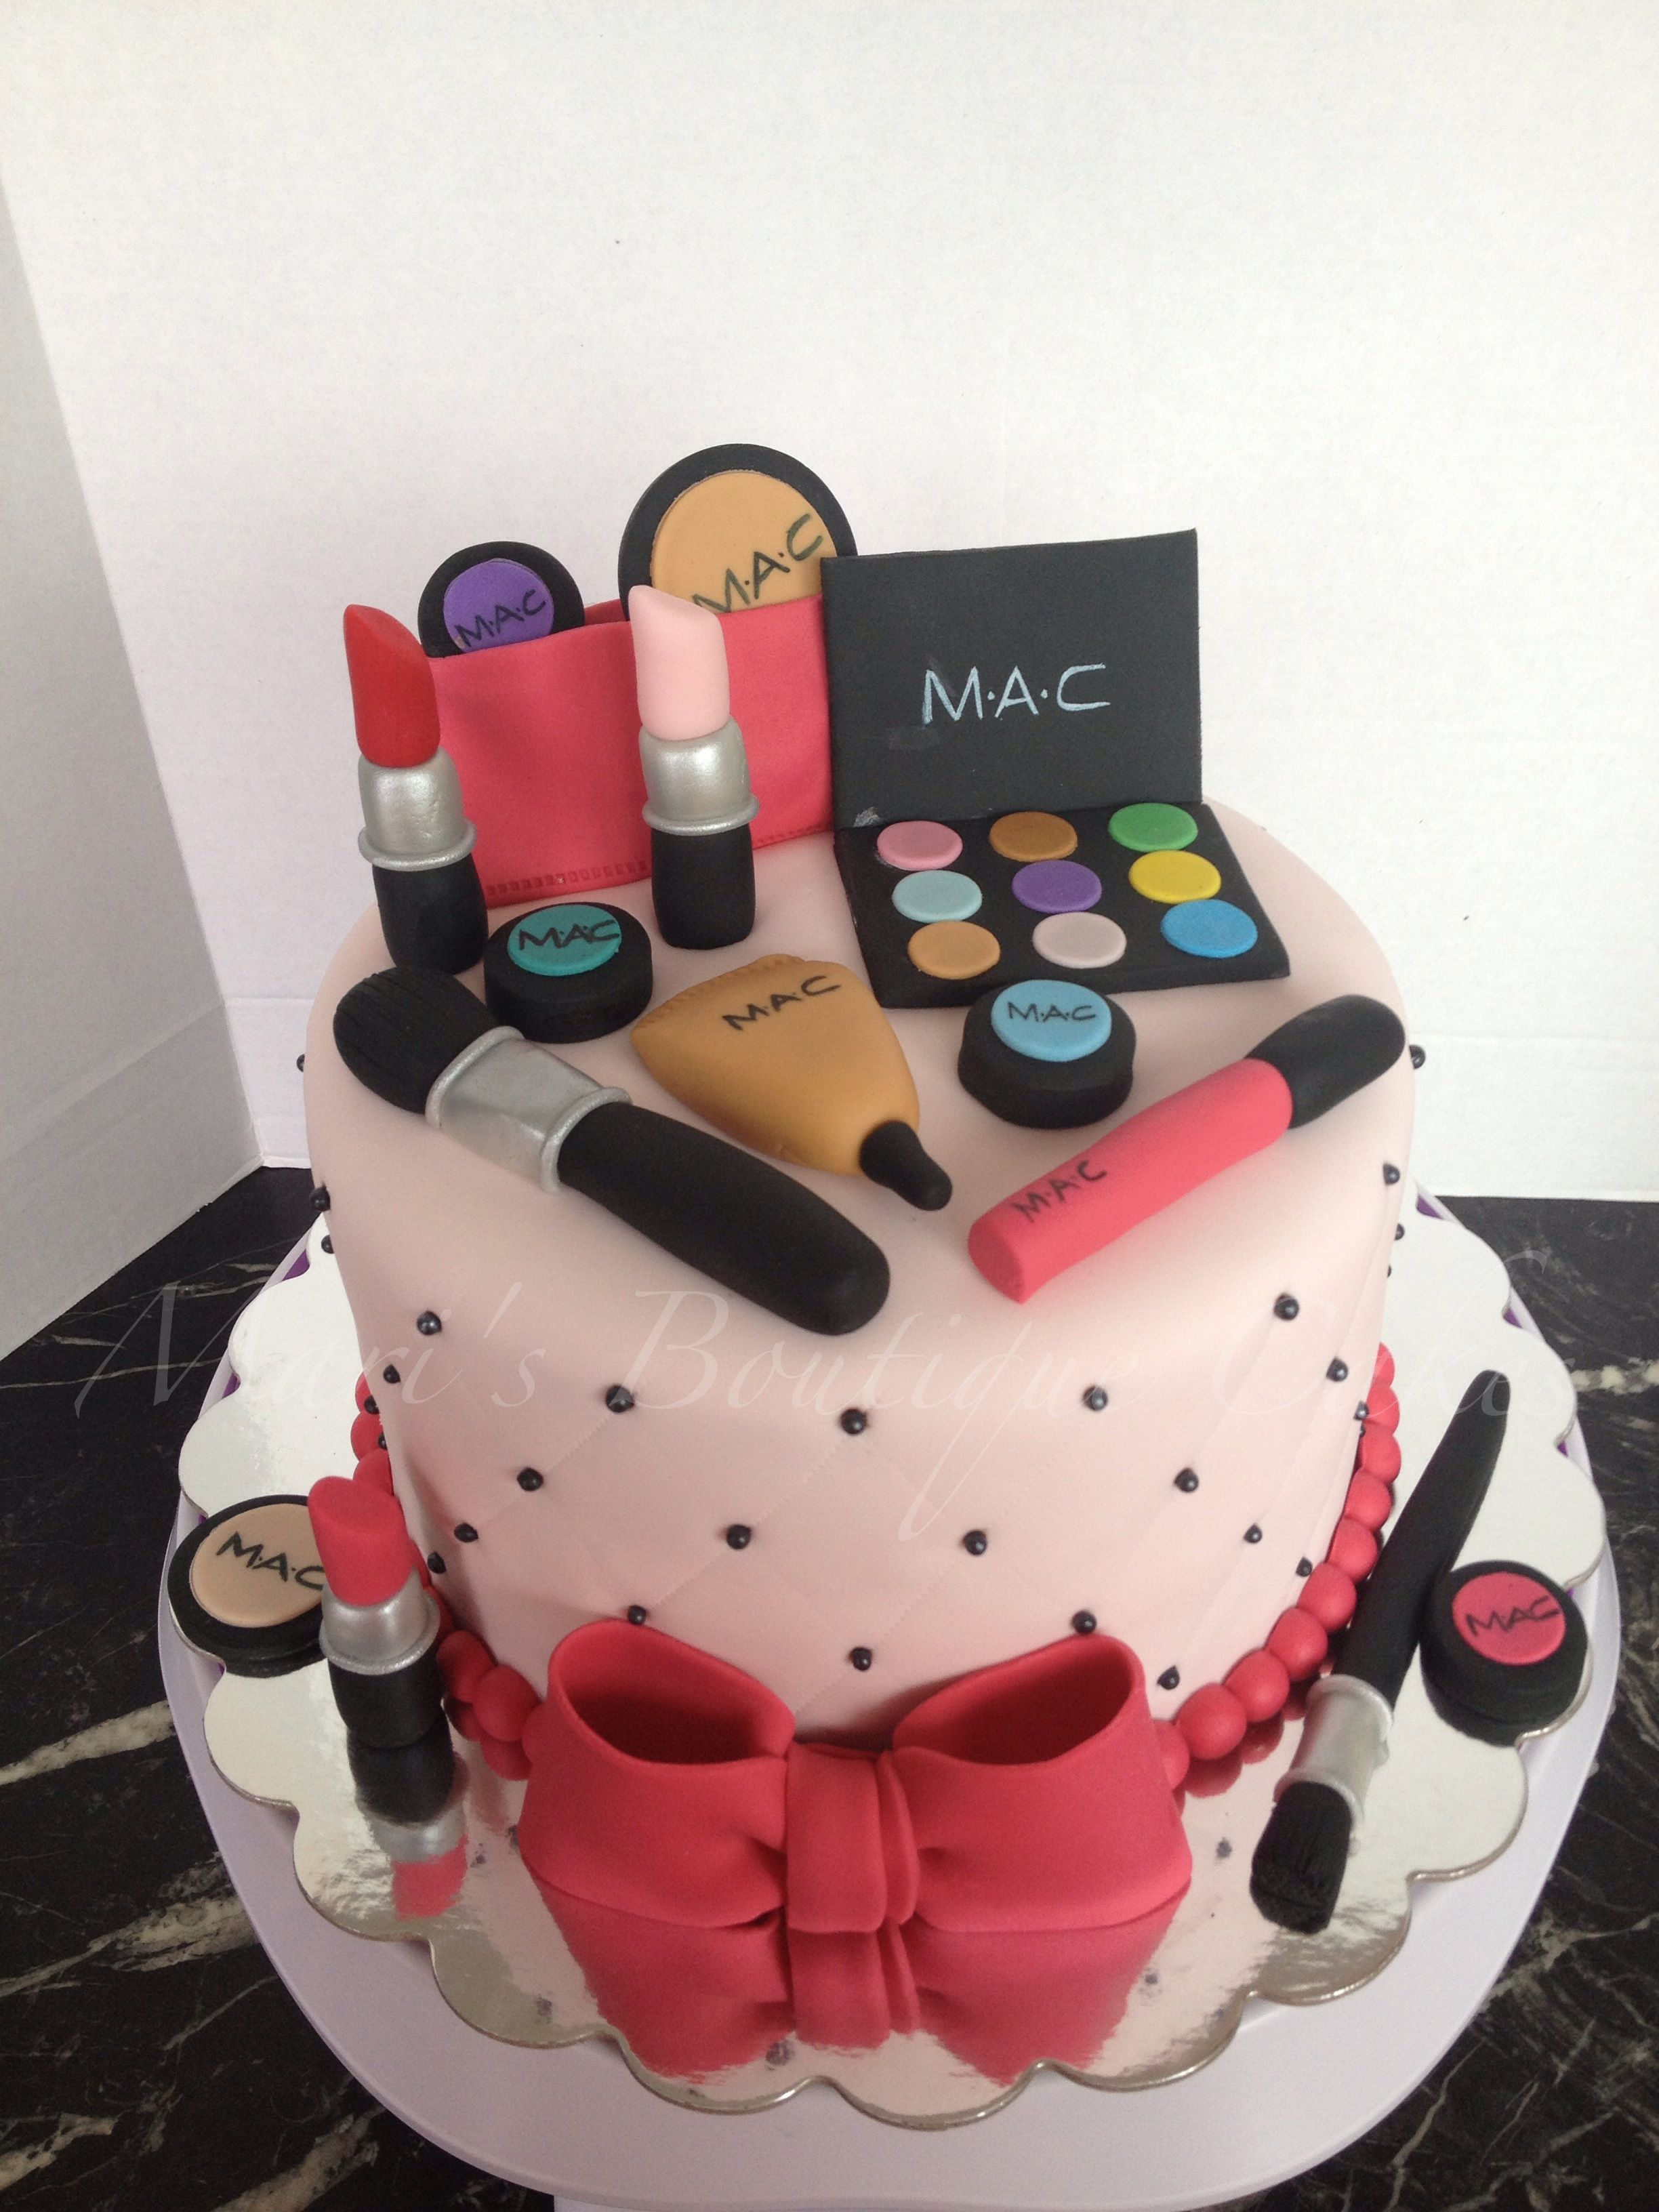 MAC Cosmetics Cake by Mari's Boutique Cakes Beauty